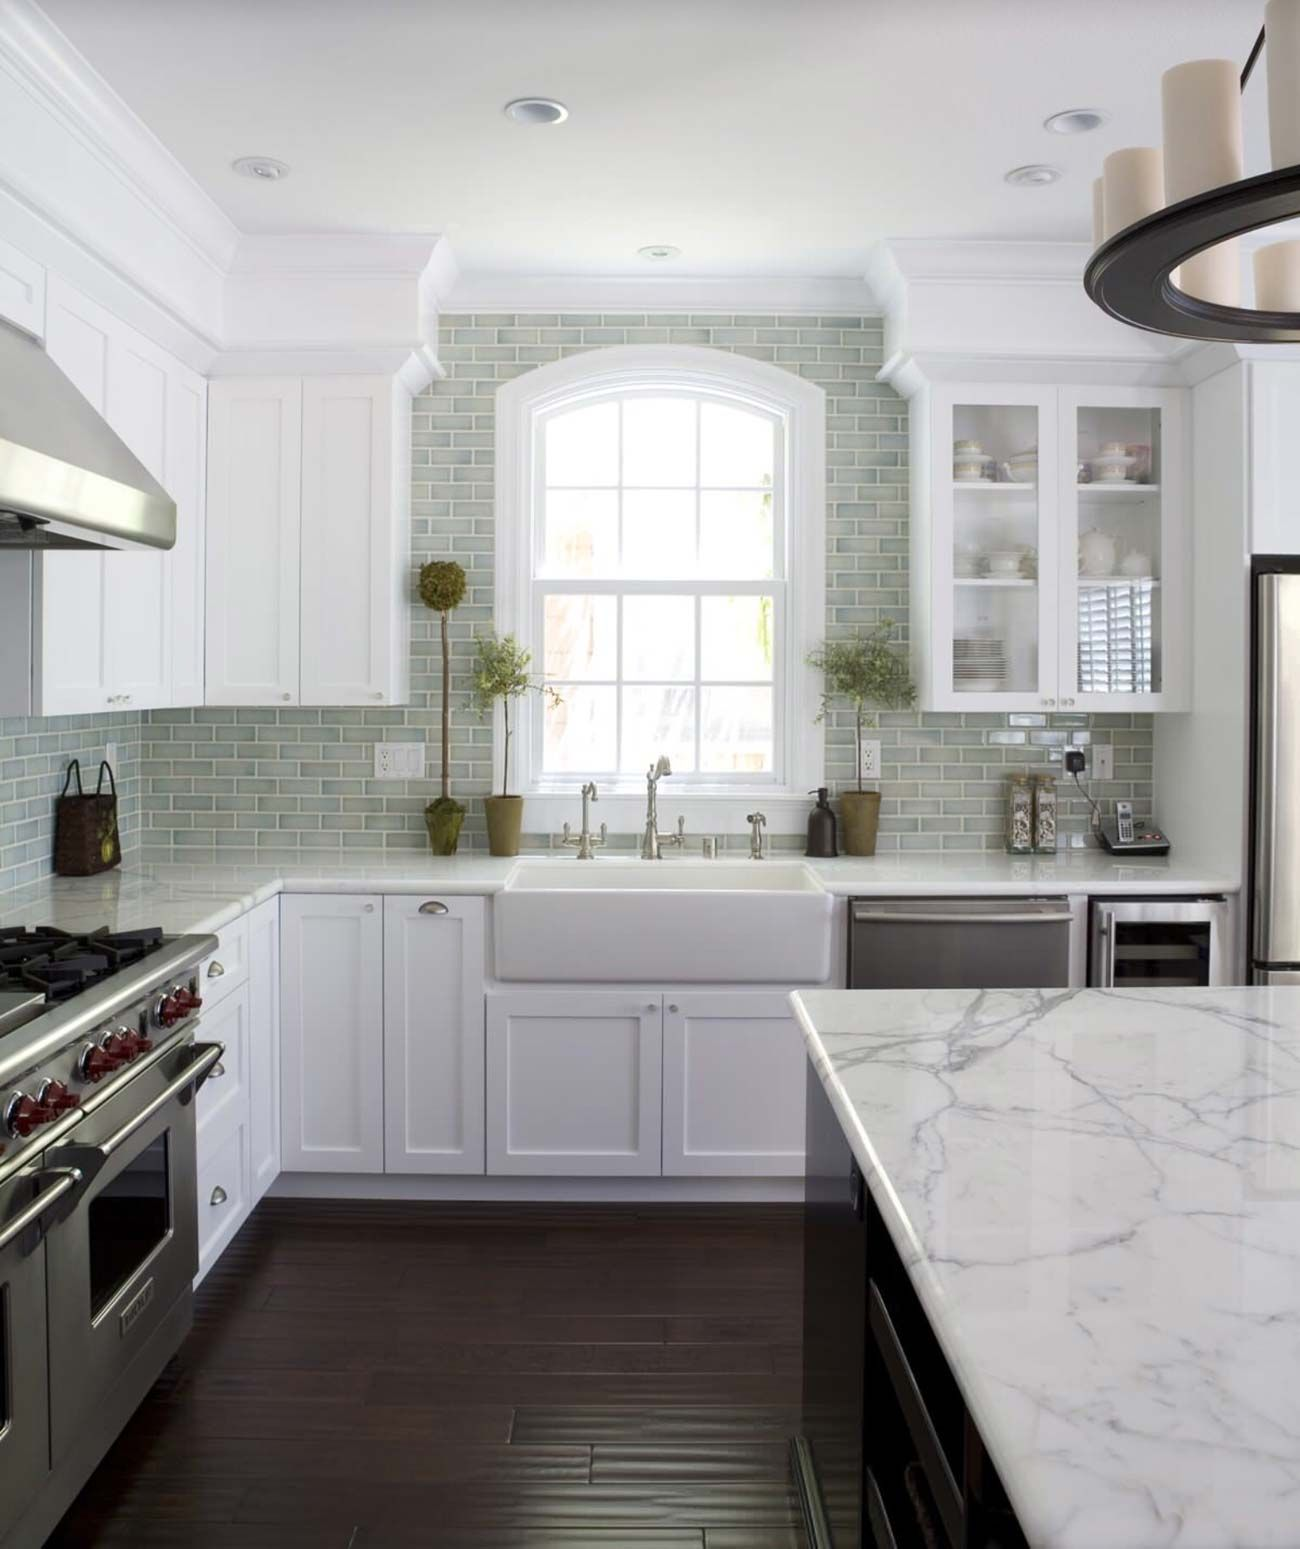 Wonderful Picture Of Kitchens With Dark Hardwood Floors And White Cabinetry